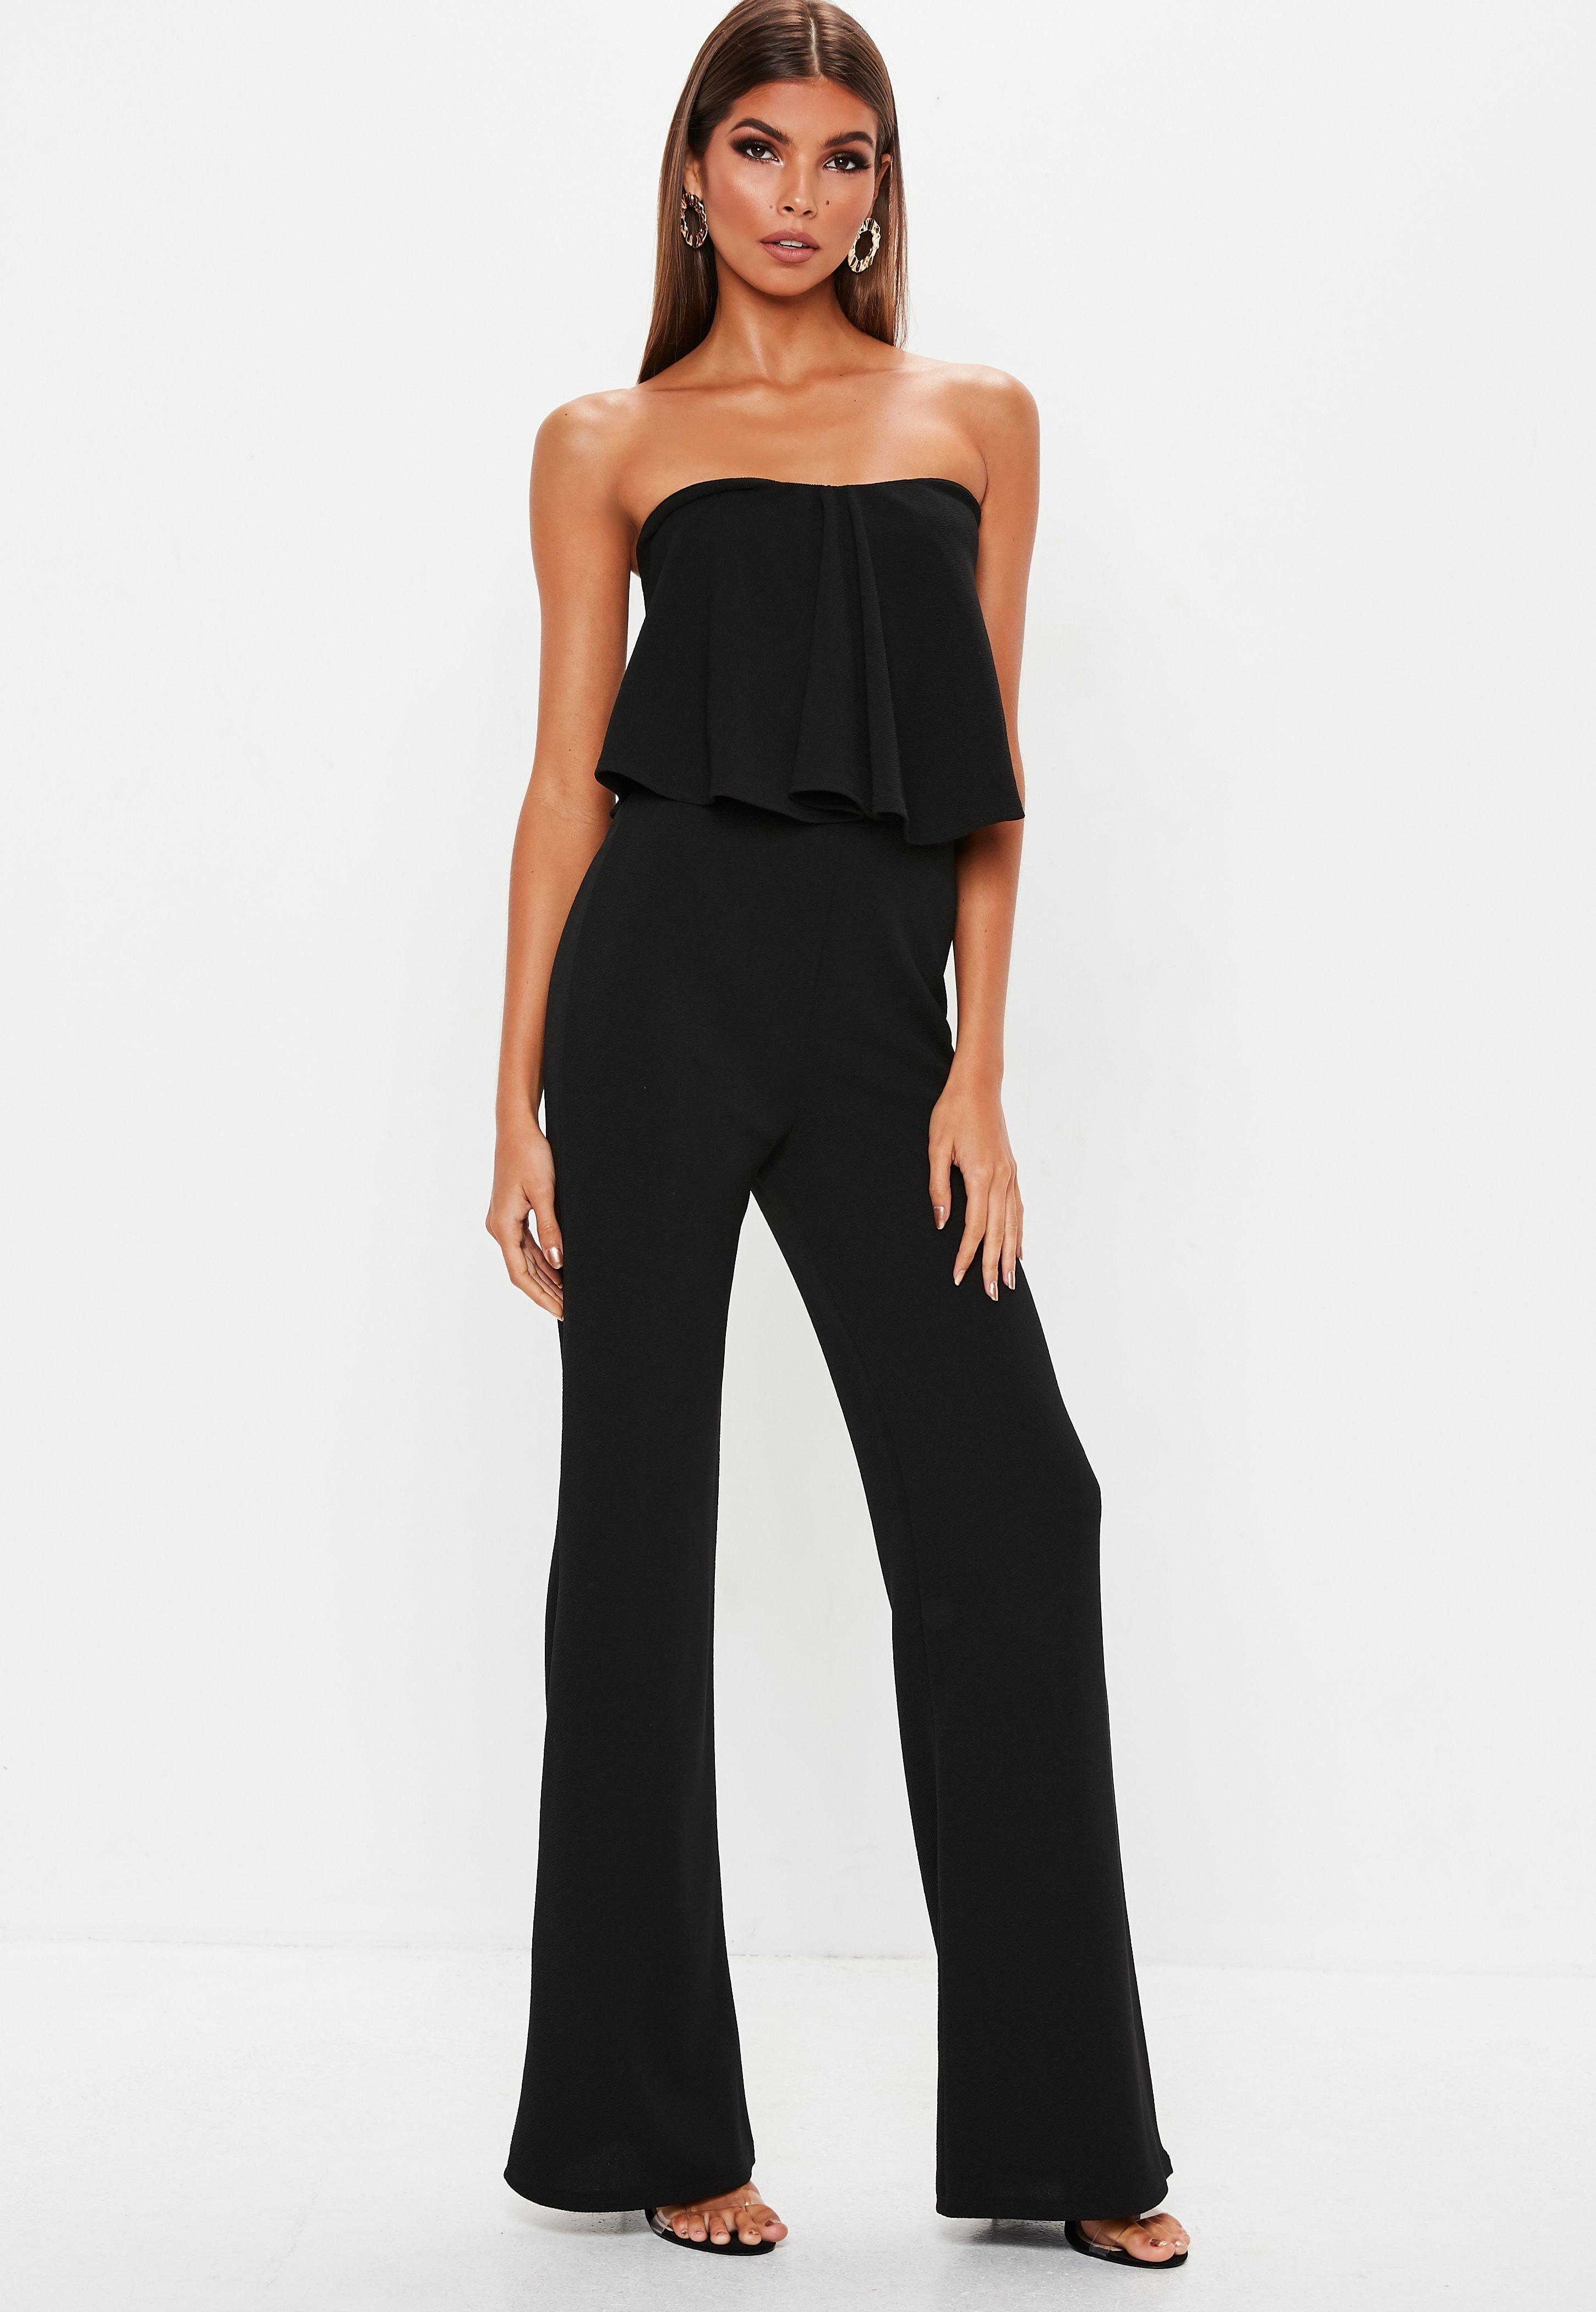 b3f455017bc Lyst - Missguided Black Bandeau Frill Wide Leg Jumpsuit in Black ...